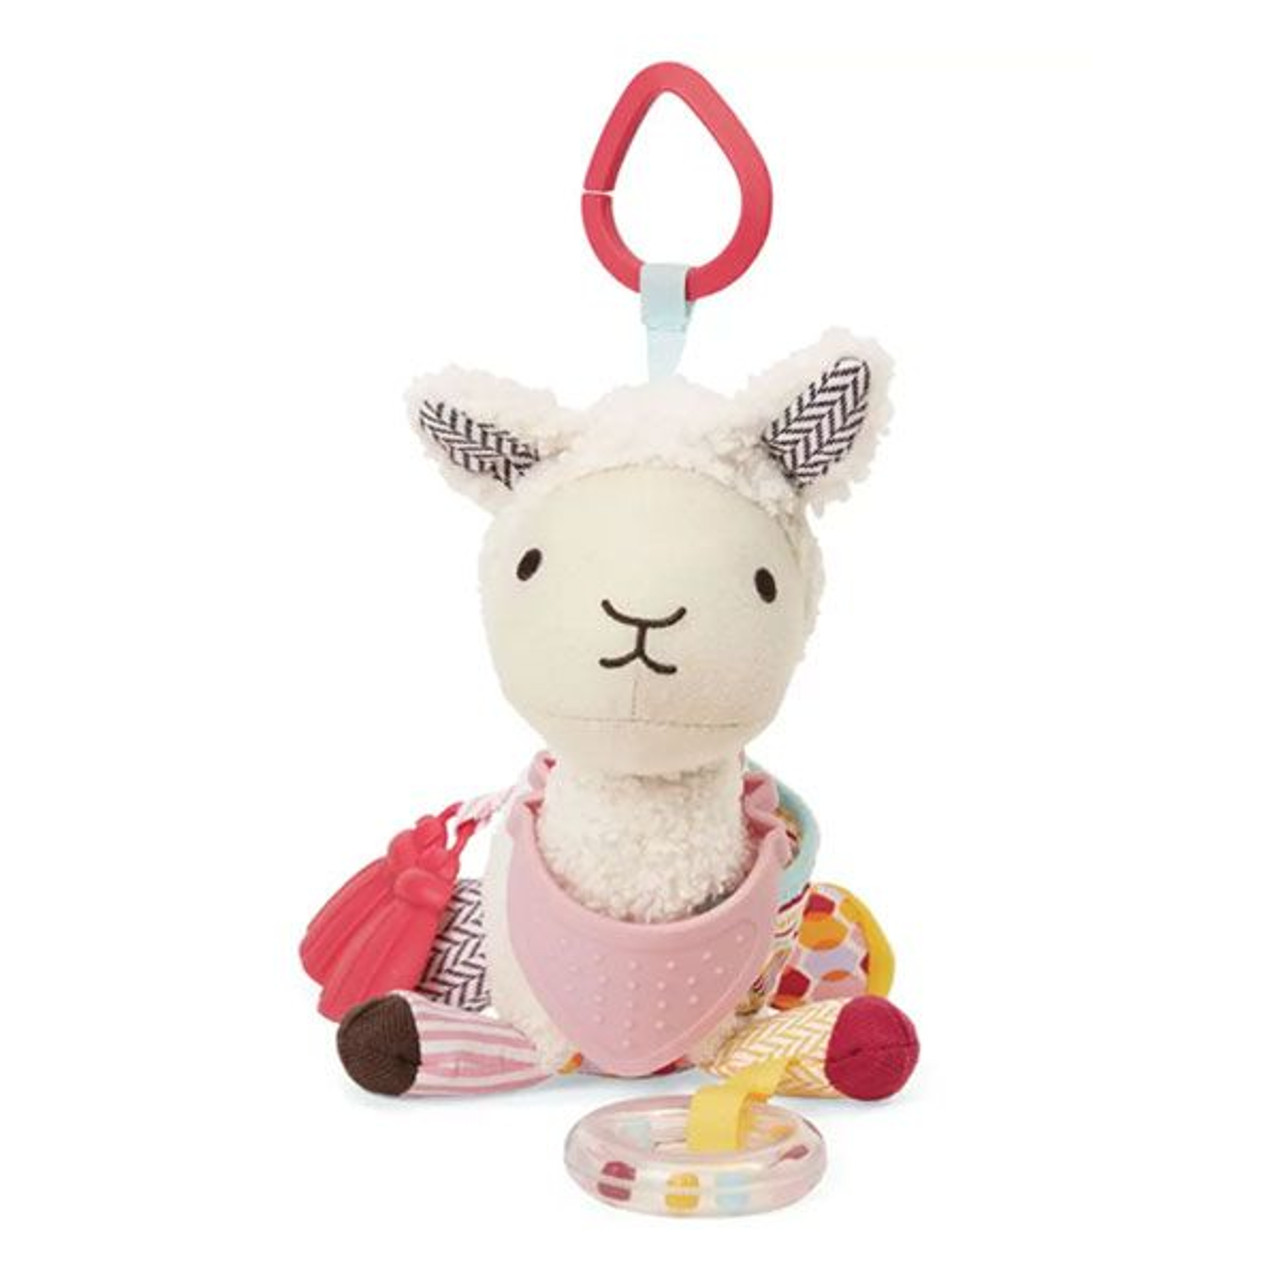 Skip Hop Bandana Buddies Acitivity Llama at Baby Barn Discounts Perfect for multi-sensory play, this soft toy and teether in one features rattles, crinkle sounds and more for baby to explore.